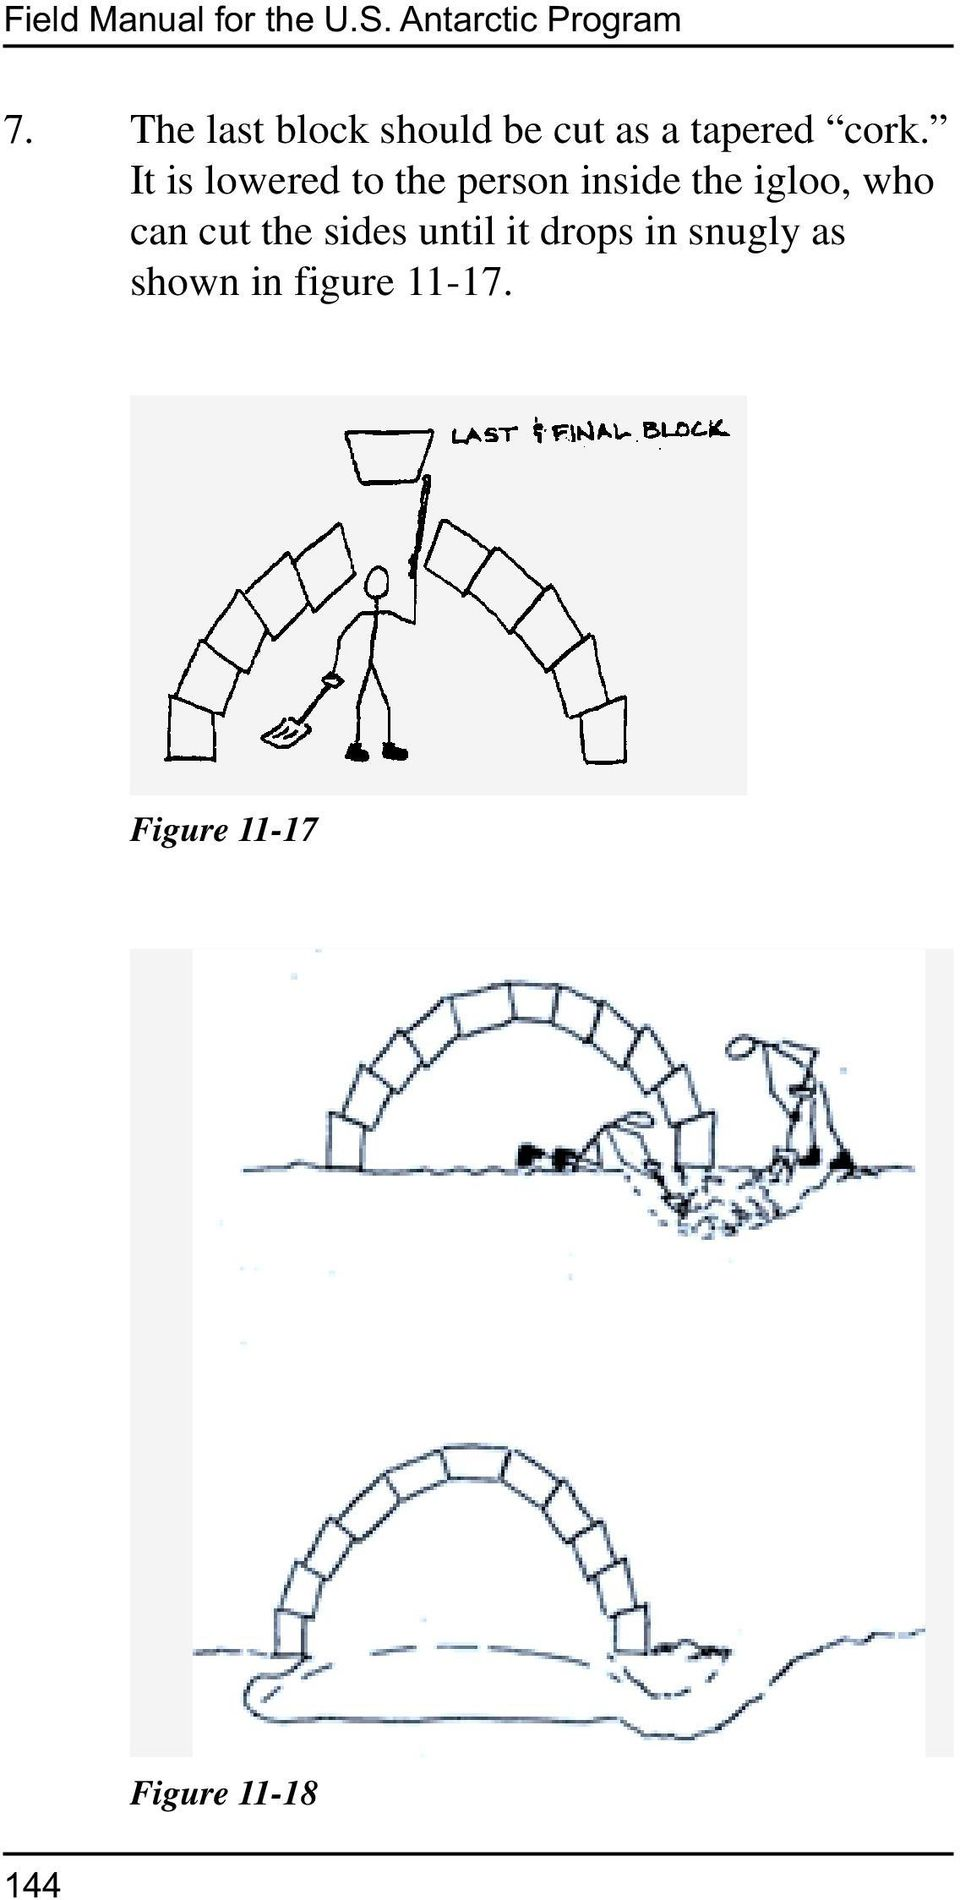 It is lowered to the person inside the igloo, who can cut